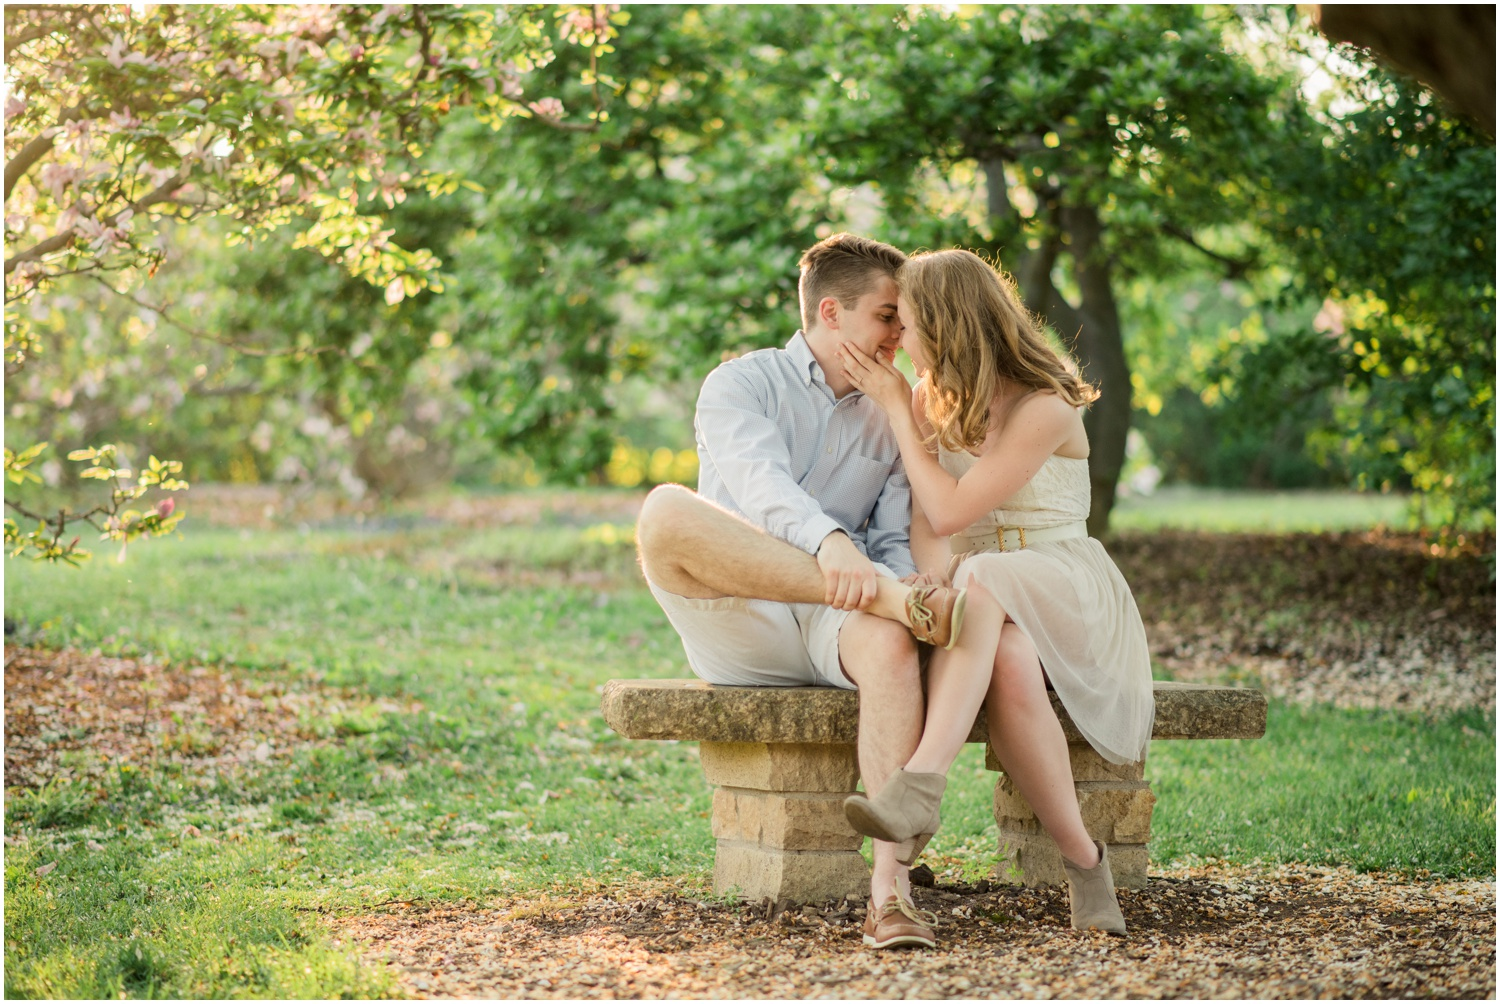 UW_Madison_Arboretum_Madison_WI_Engagement_Photos_Sydney_and_Tim_0026.jpg